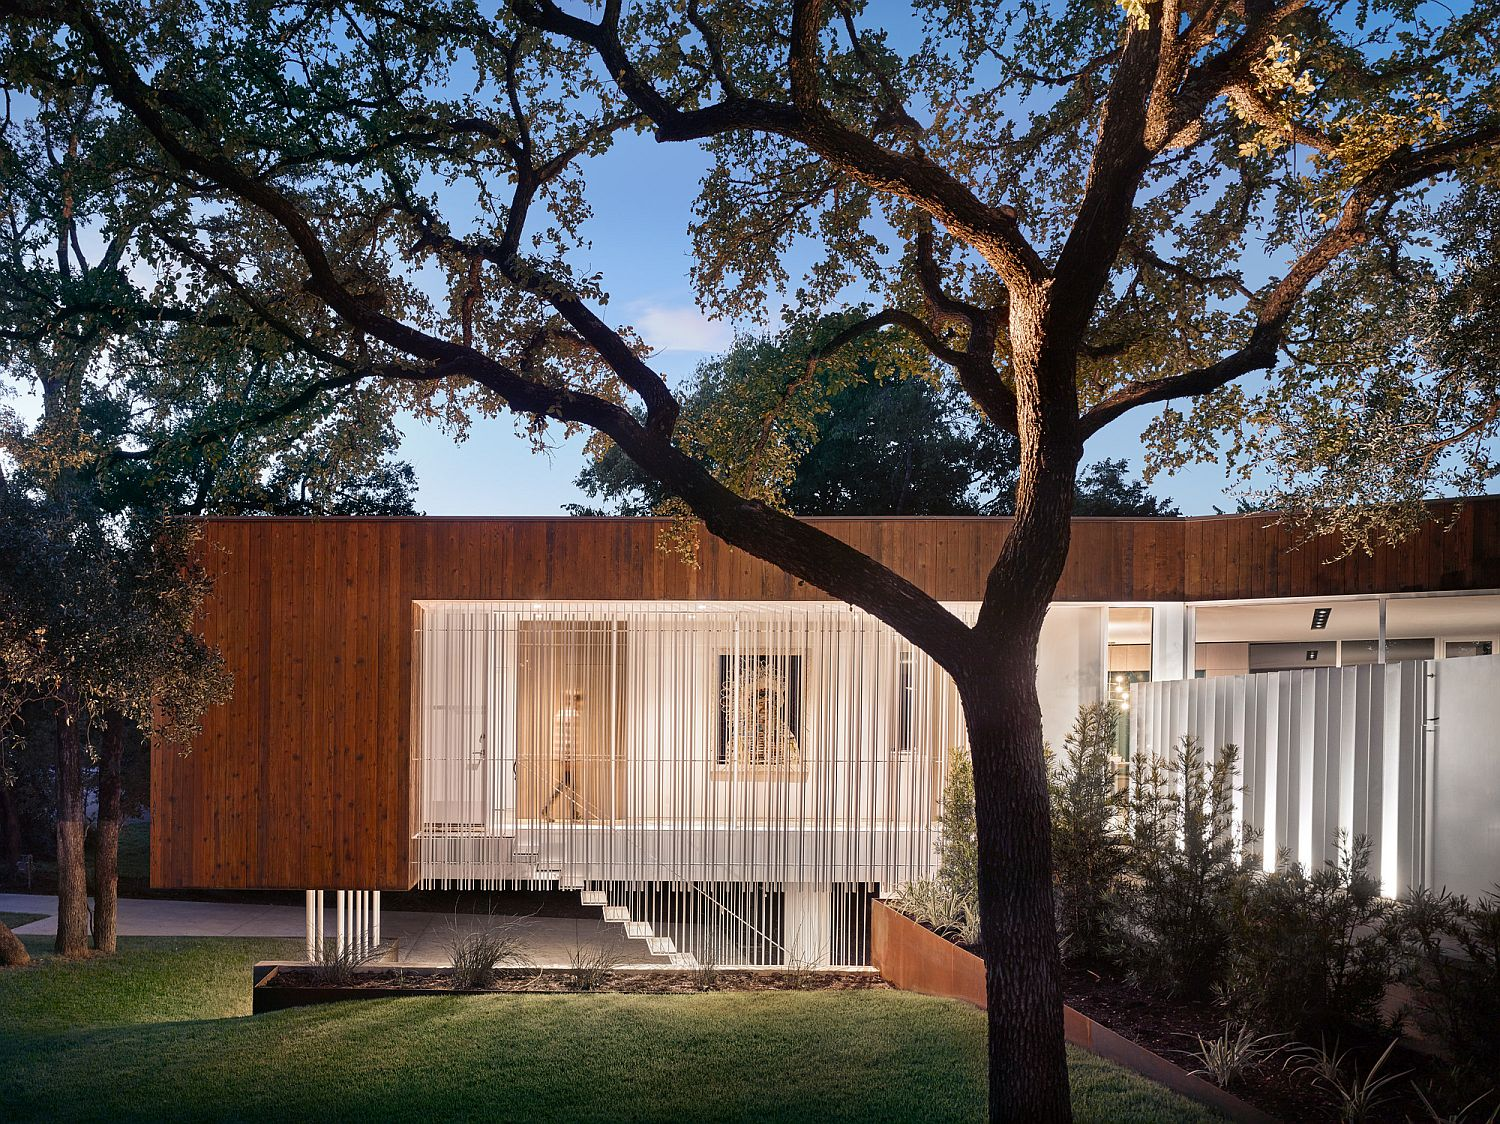 Wood and glass modern home in Austin